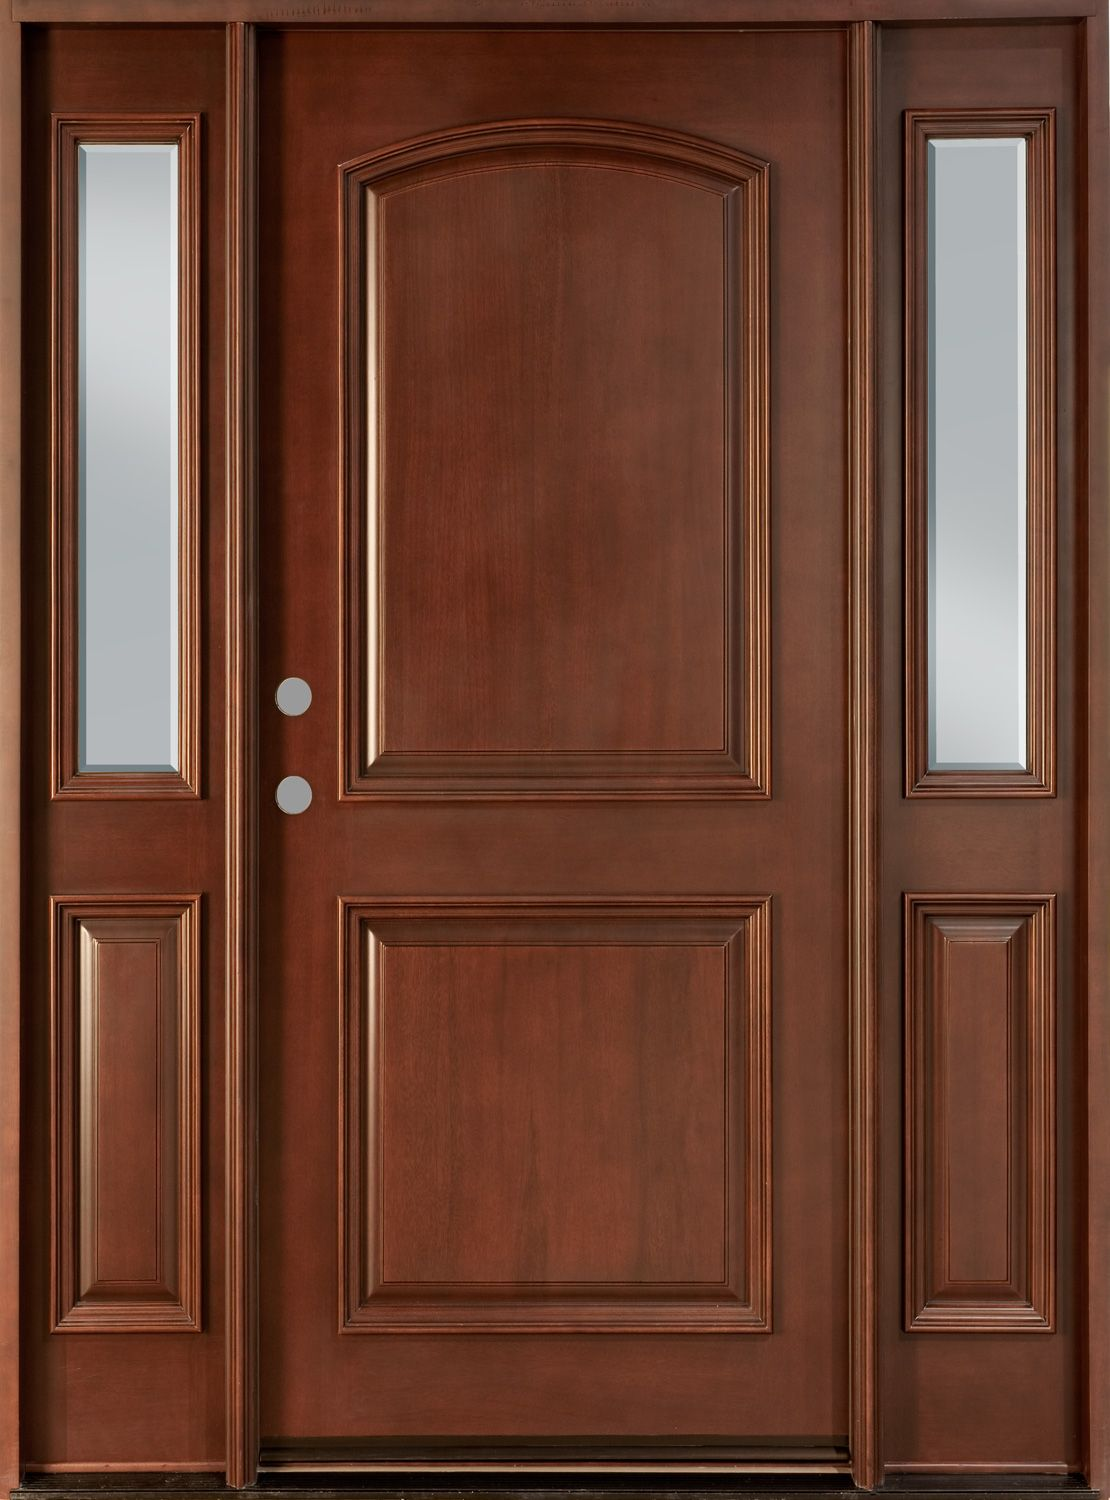 Front Door Custom Single With 2 Sidelites Solid Wood With Dark Mahogany Finish Class Solid Wood Front Door Wooden Front Doors Solid Wood Front Entry Doors